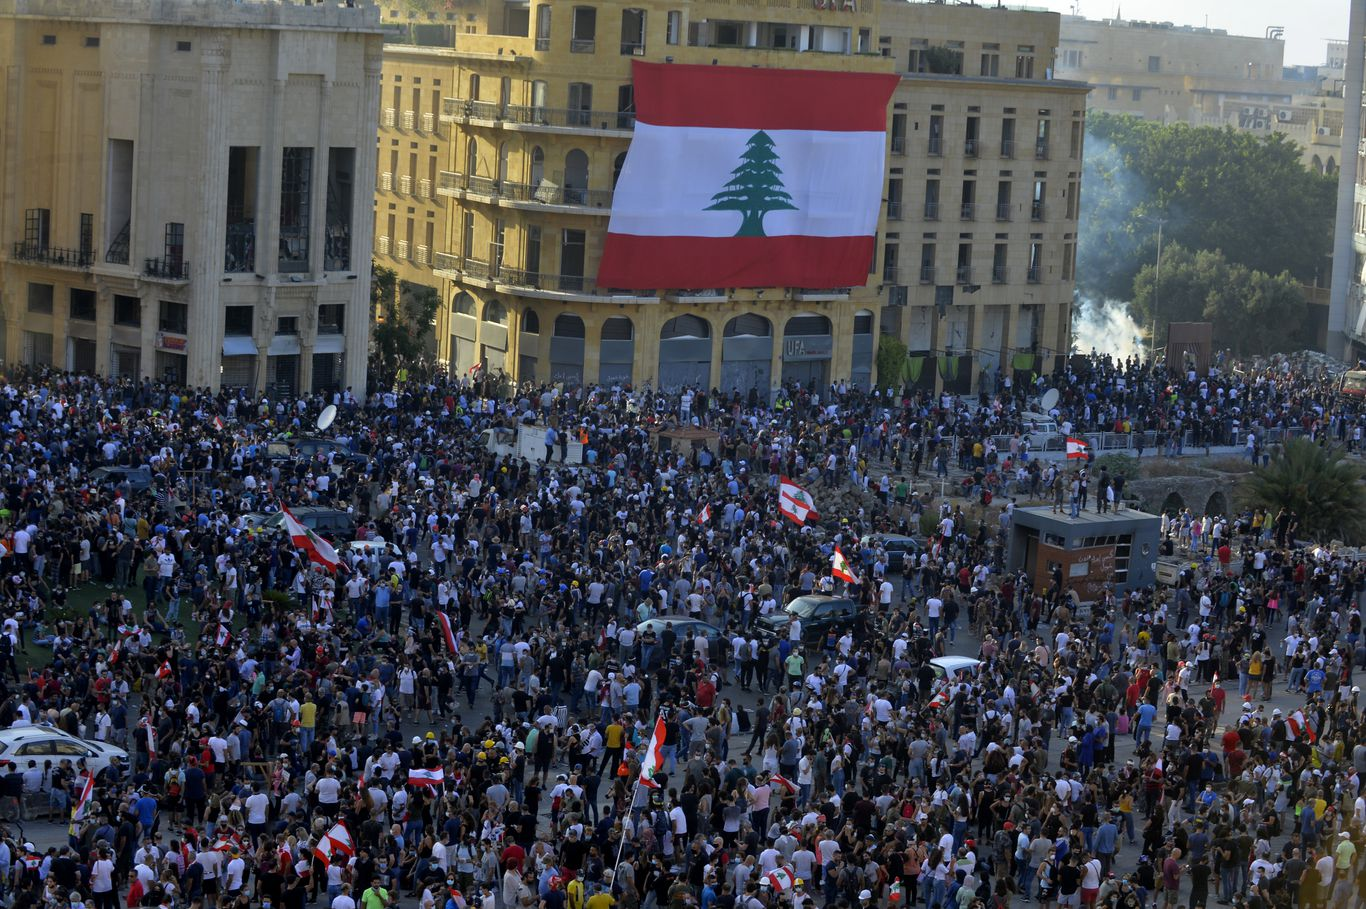 World leaders holding Lebanon aid summit after night of unrest in Beirut